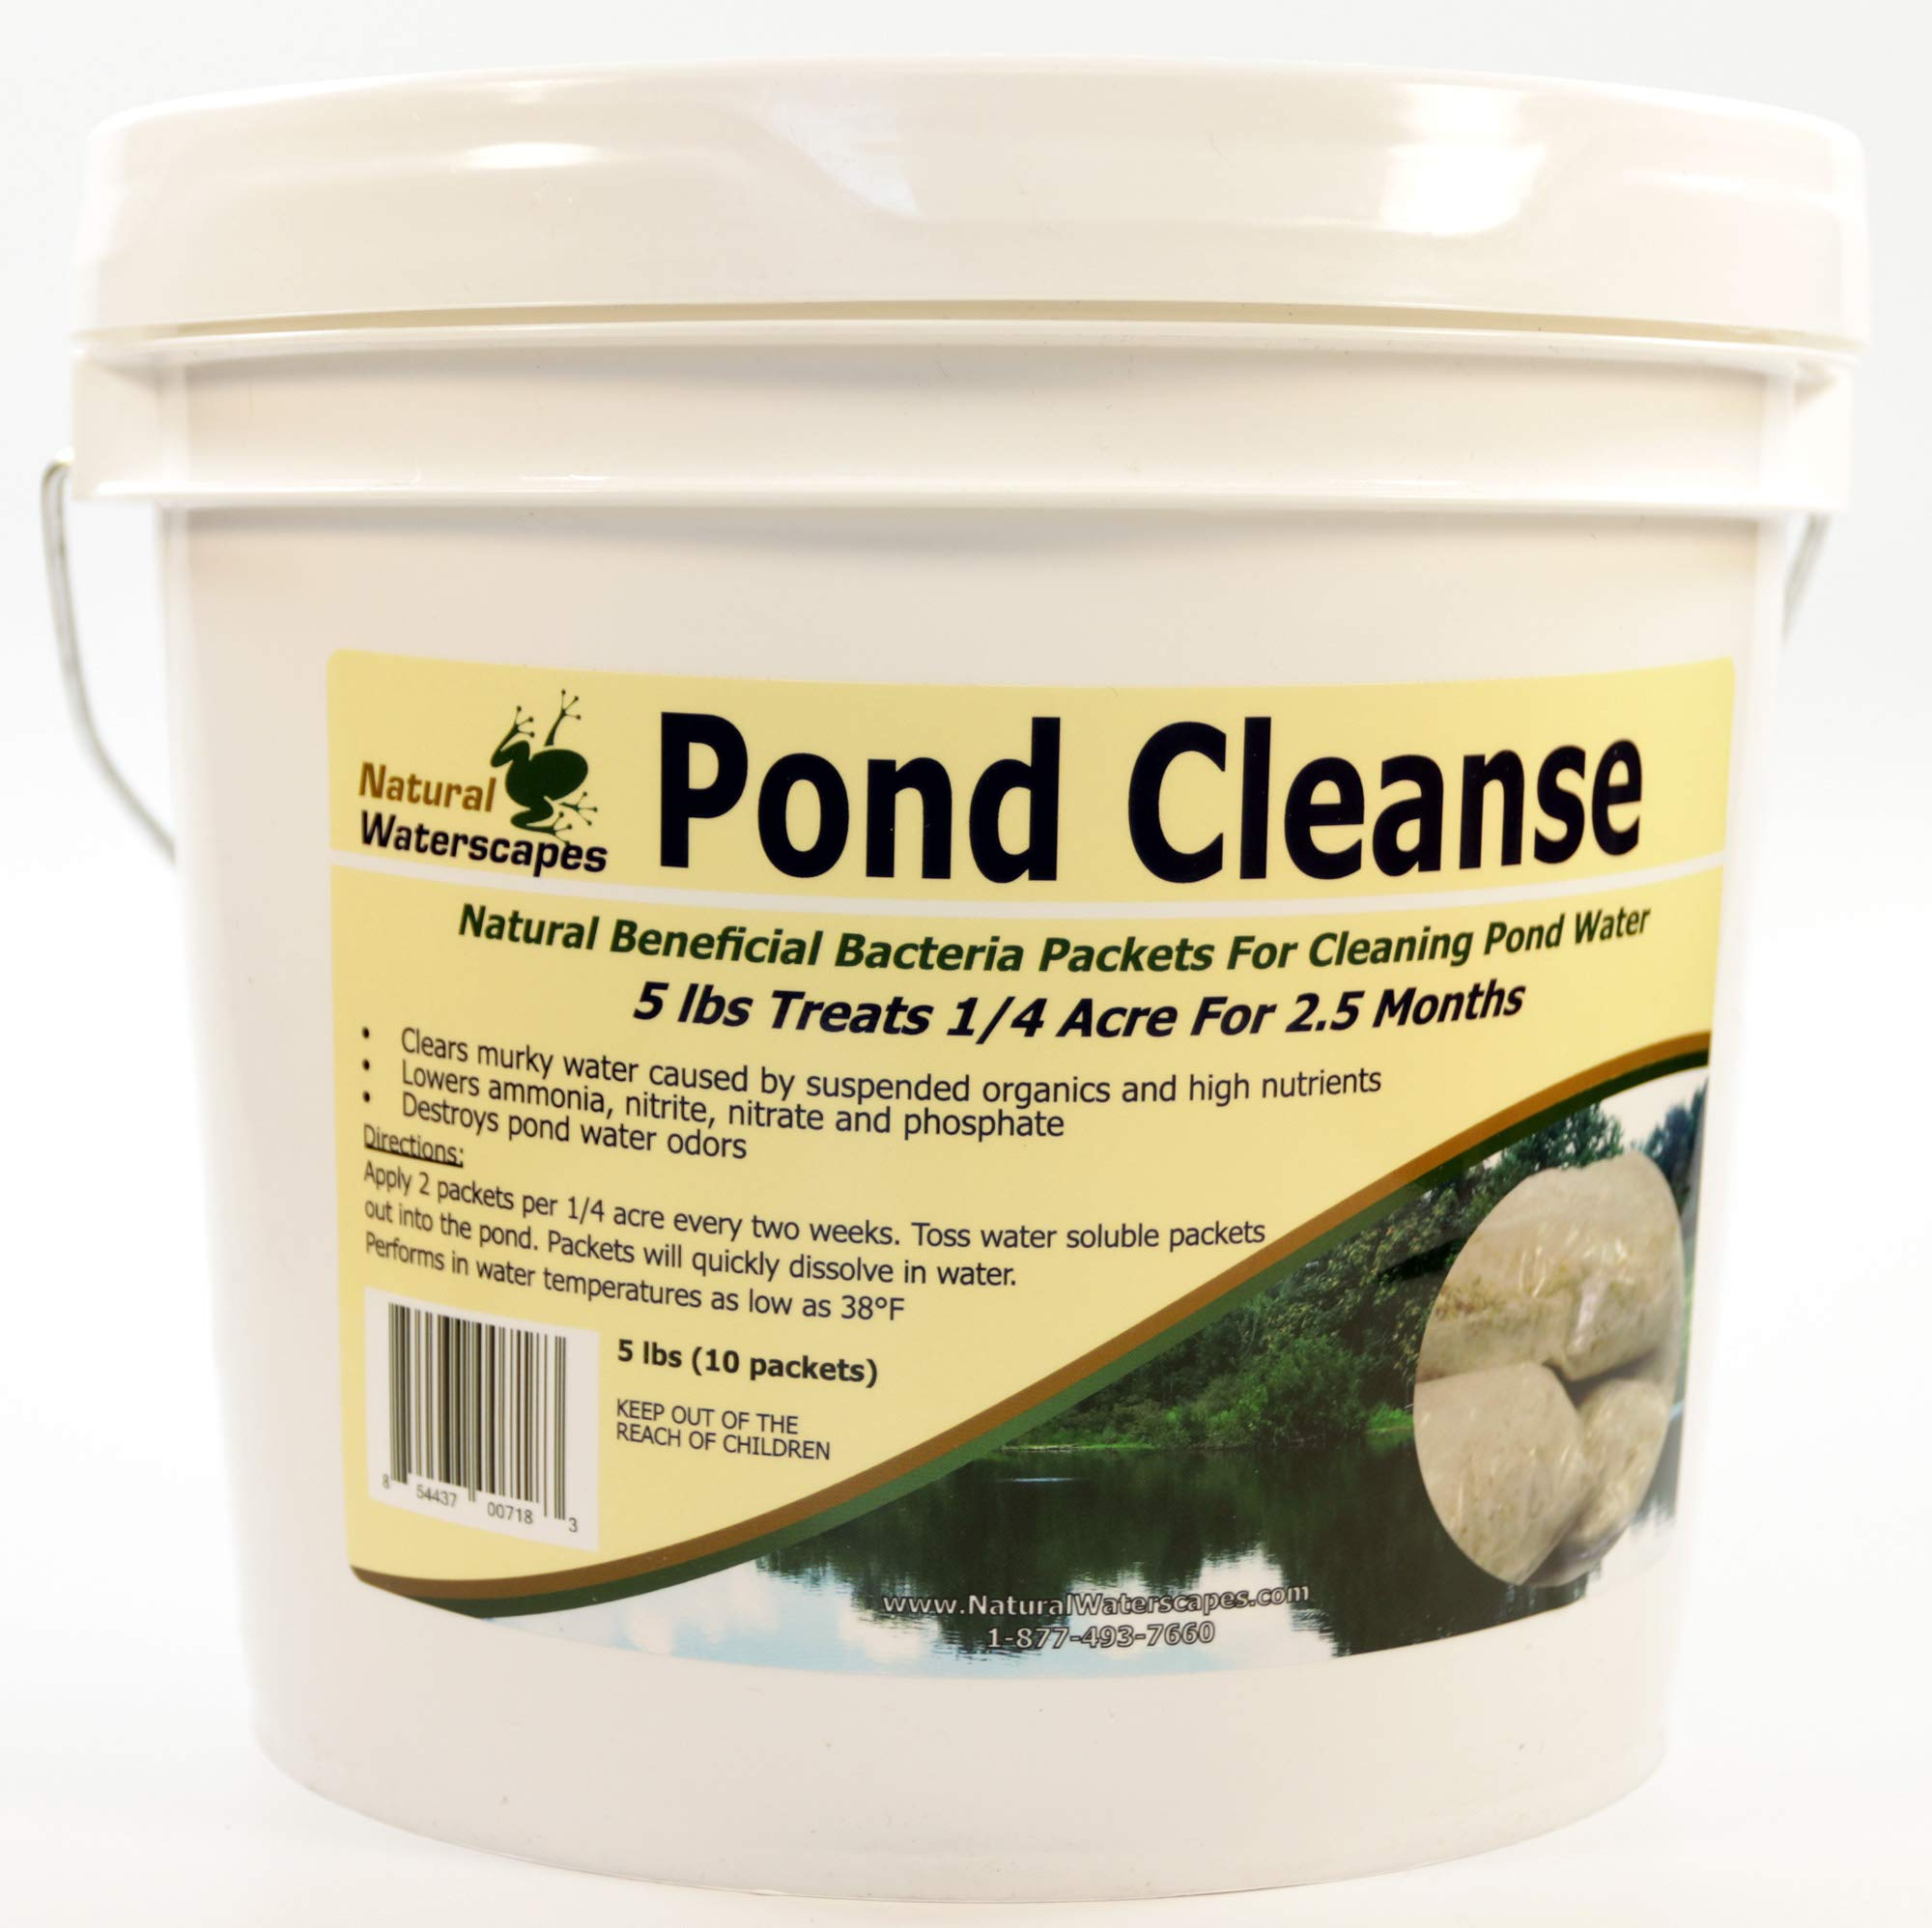 Pond Cleanse Bacteria Packets 5 lb by Natural Waterscapes